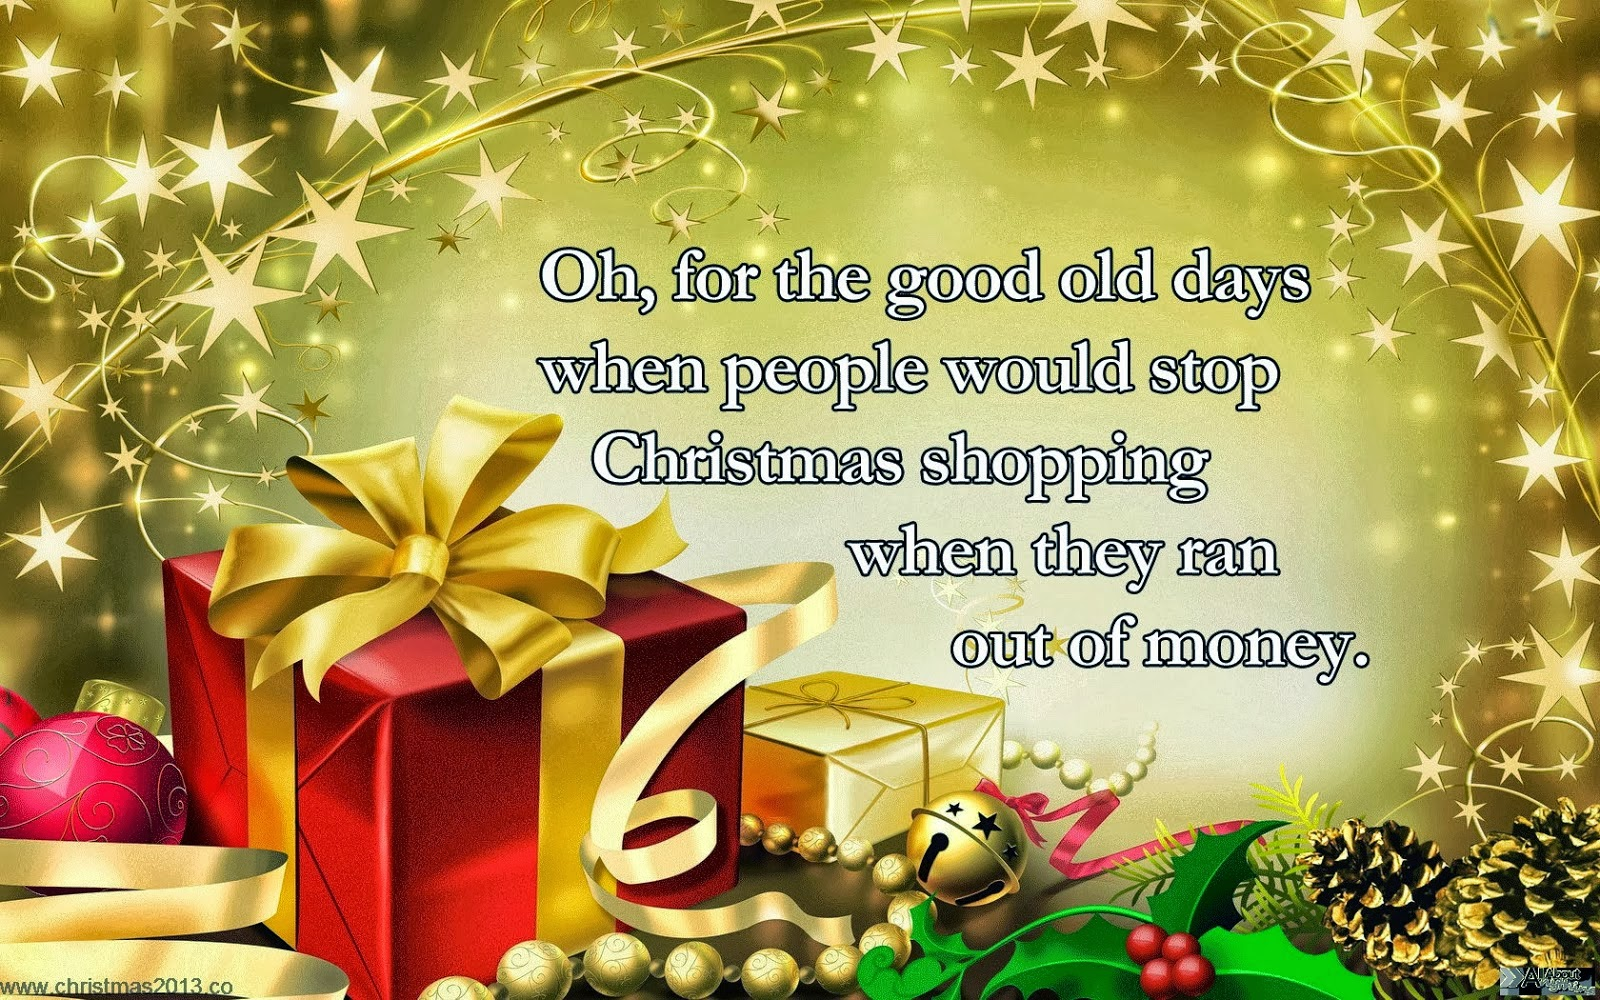 Happy diwali 2014 free download hd wallpapers images facebook famous christmas card quotes christmas card sayings 2014 m4hsunfo